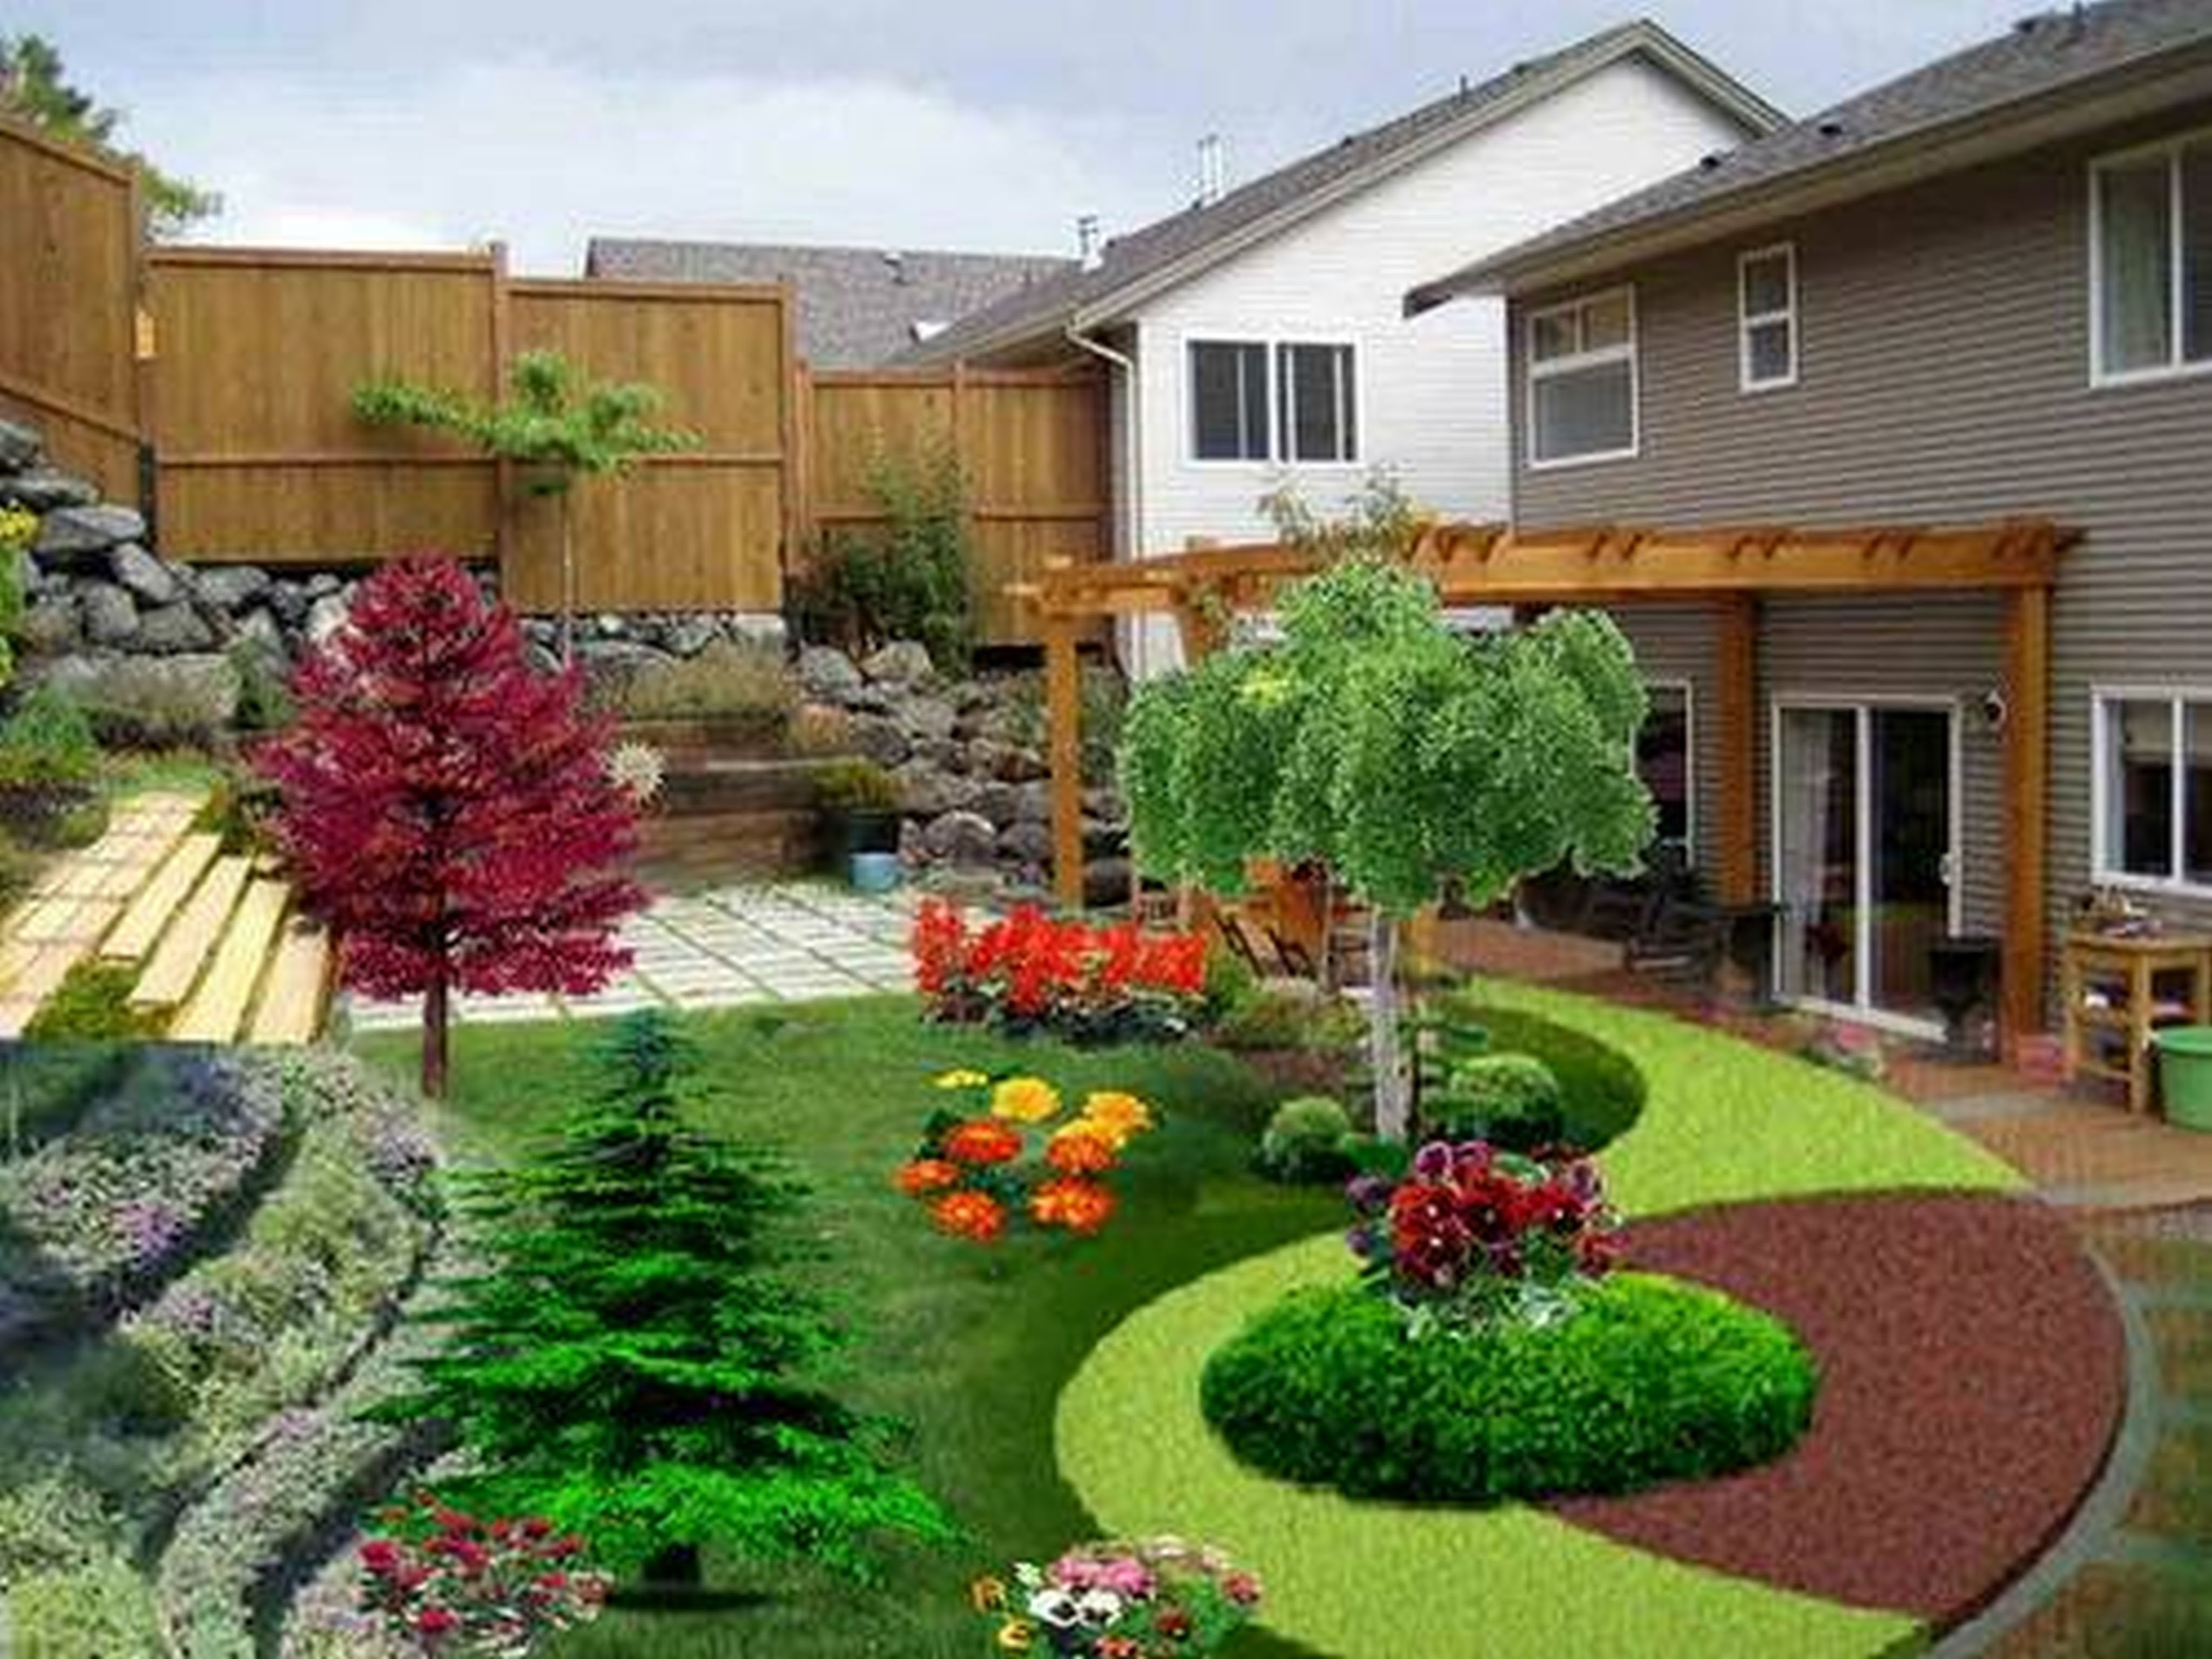 10 Great Landscaping Ideas For Front Of House tips for front yard landscaping ideas front house garden design